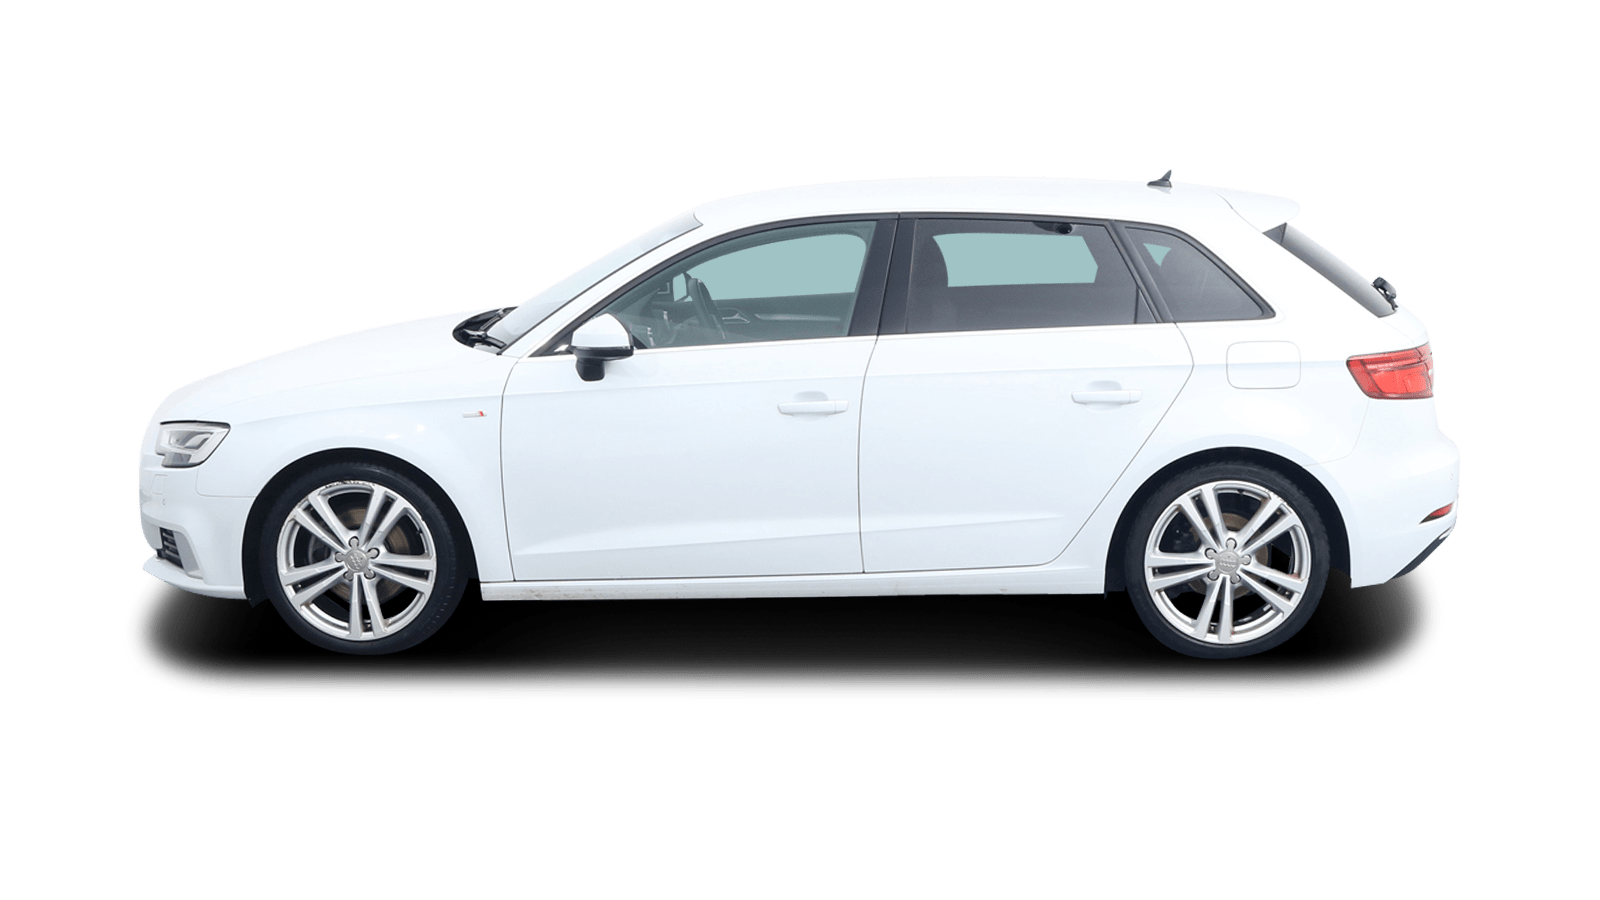 Audi A3 Sportback White back - Clyde car subscription